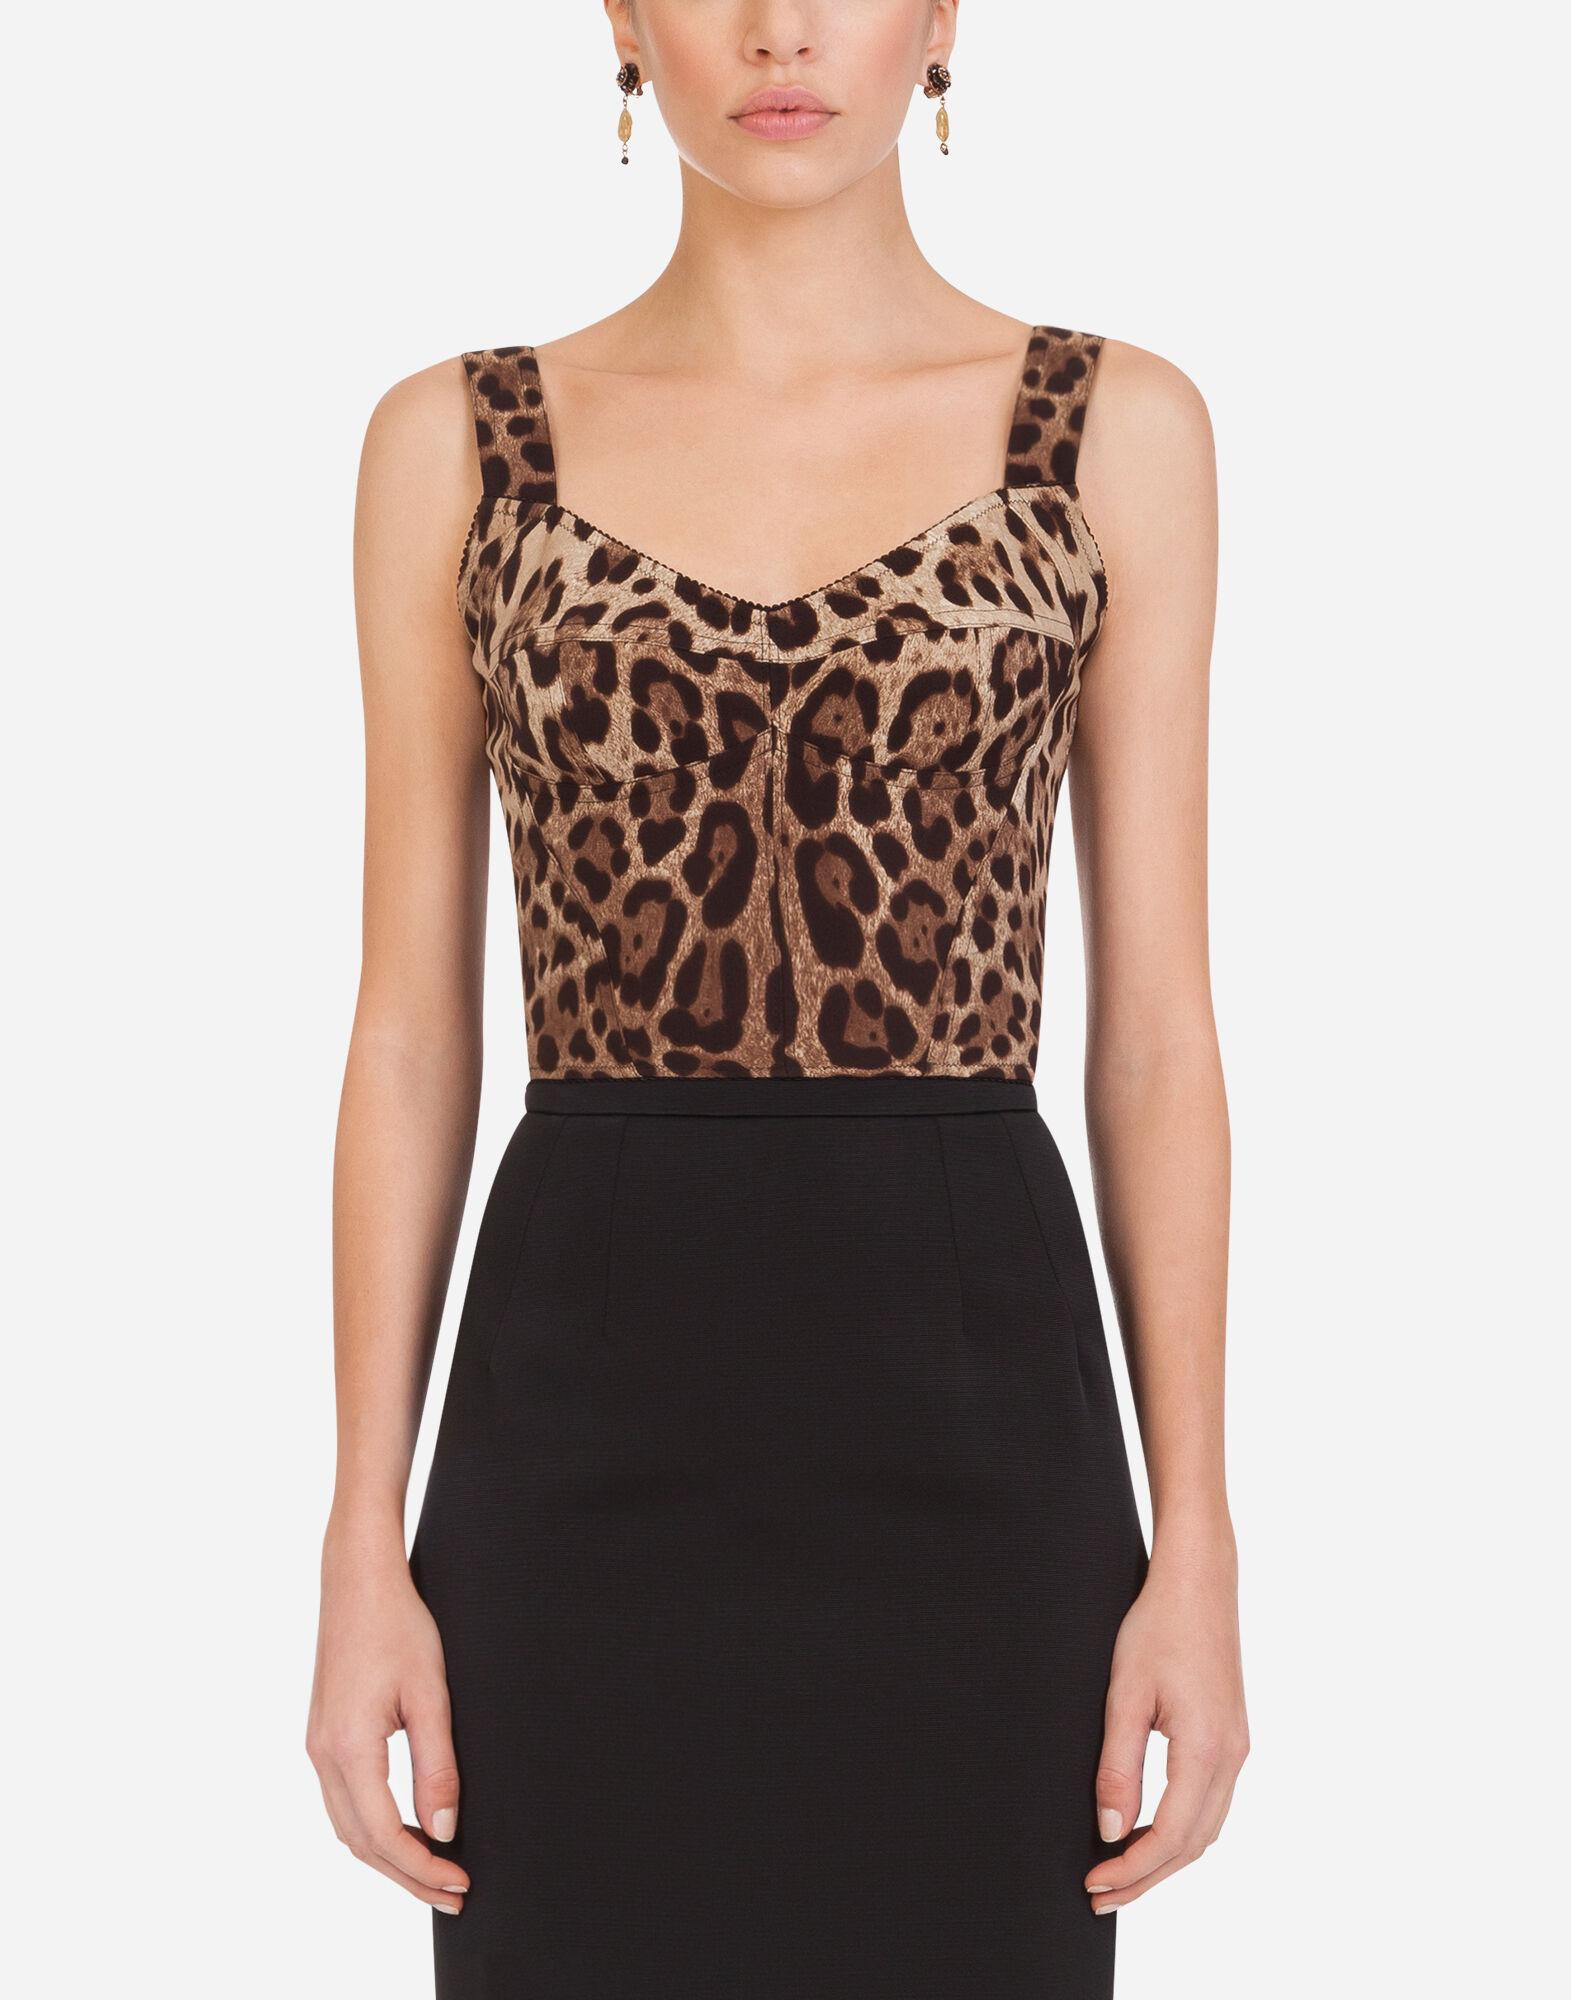 Leopard-print charmeuse bustier top